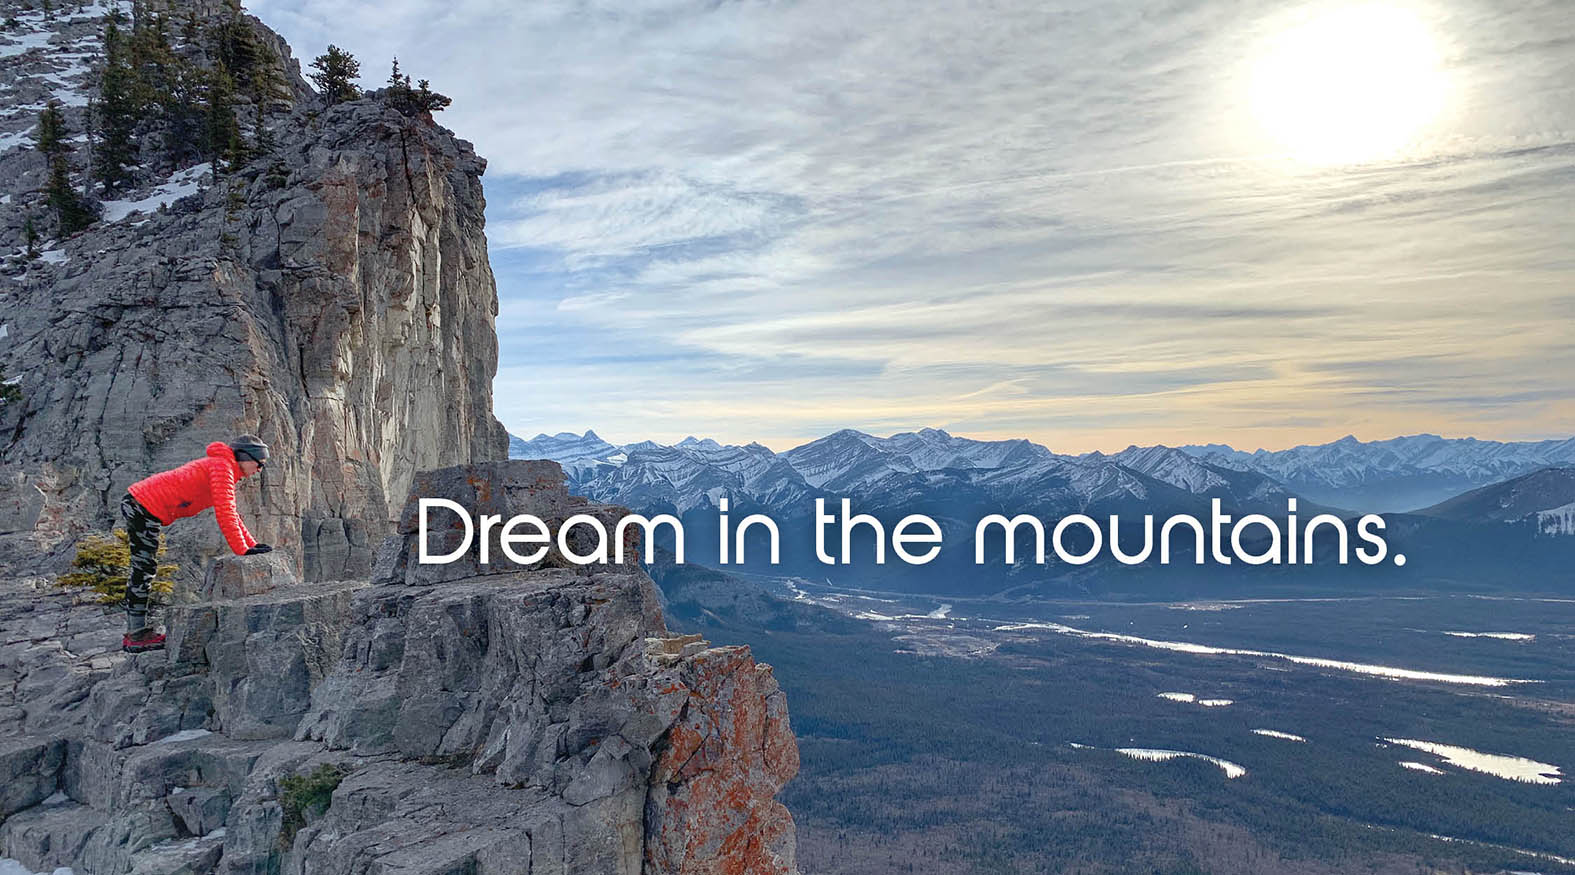 Dream in the mountains without a Sleeping bag liner ad